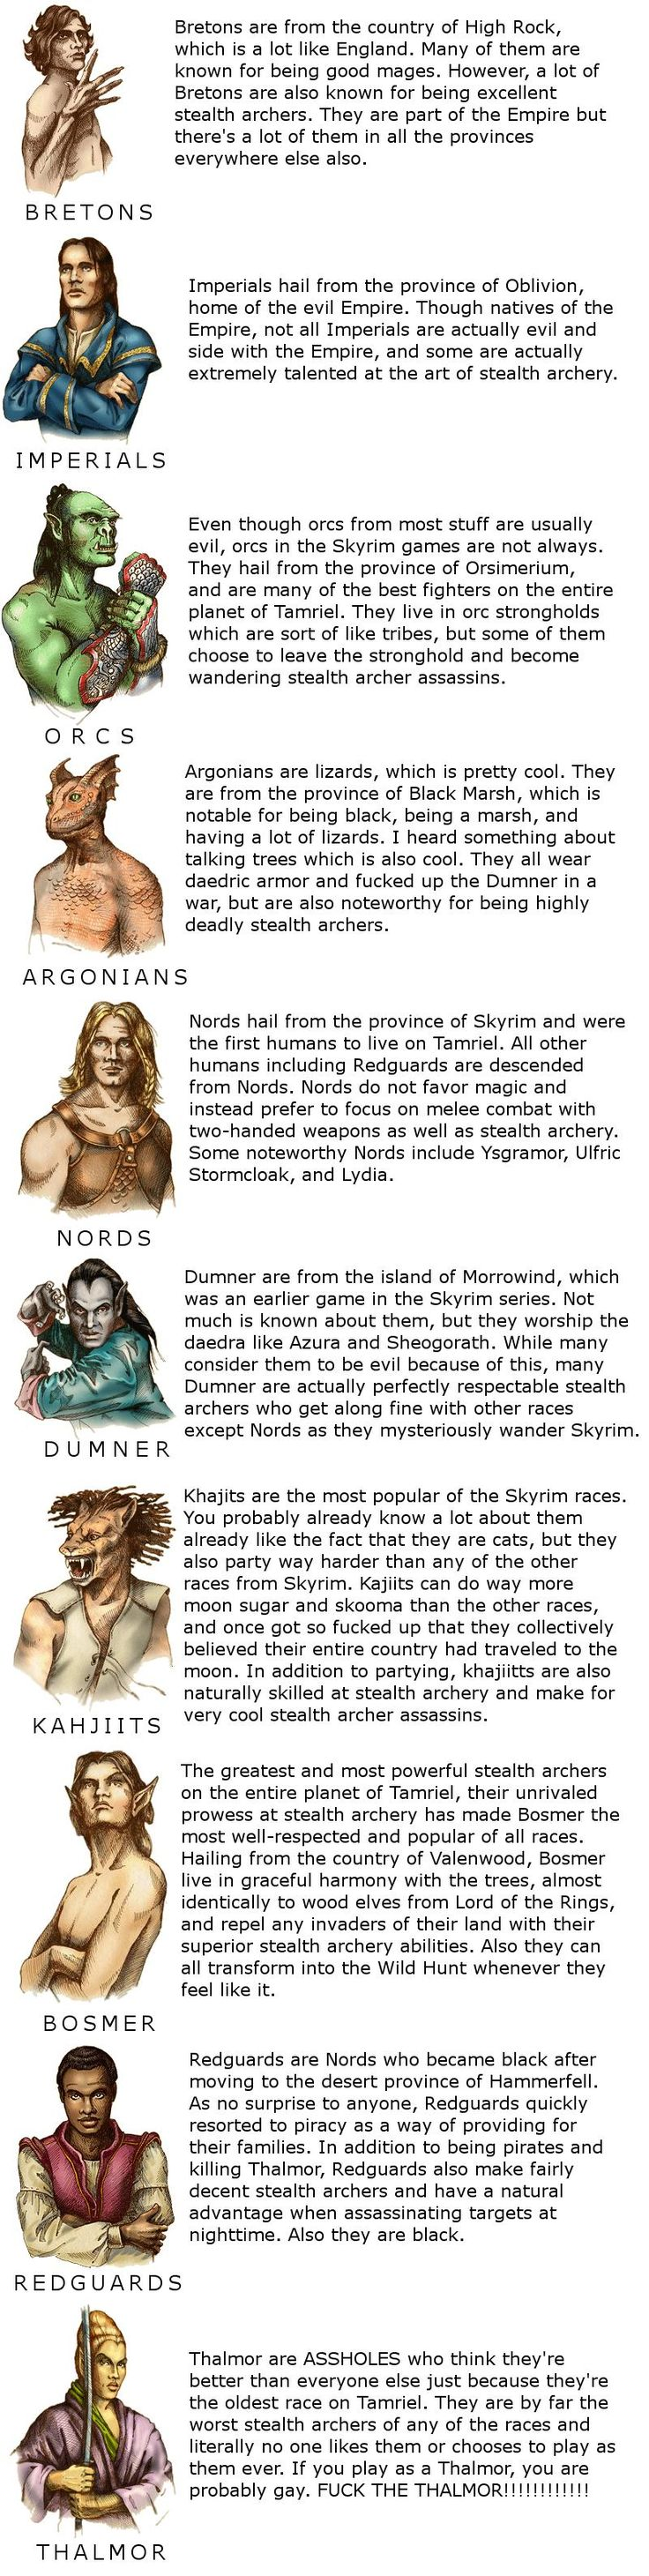 Wow Imperials don't come from oblivion that would make them daedra. They are from Cyrodil. Learn your elder scrolls facts asshole